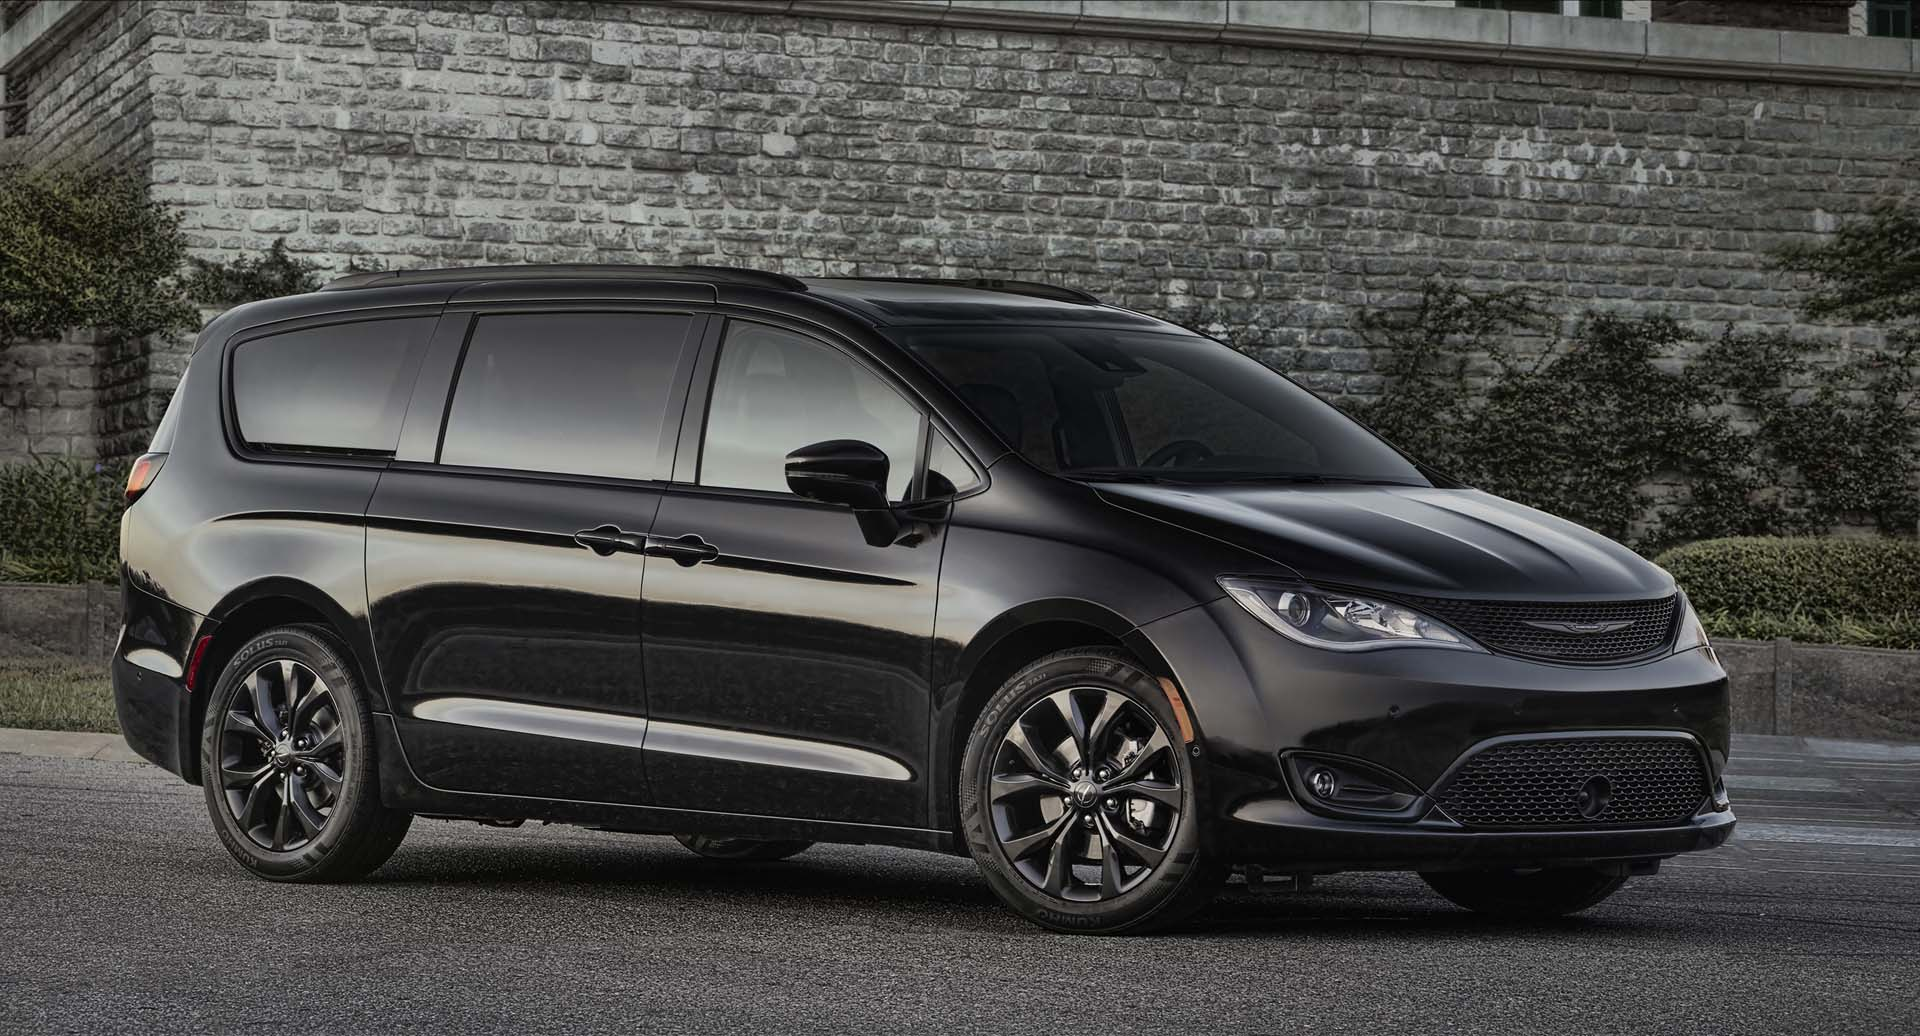 2019 Chrysler Pacifica Review, Ratings, Specs, Prices, and ...